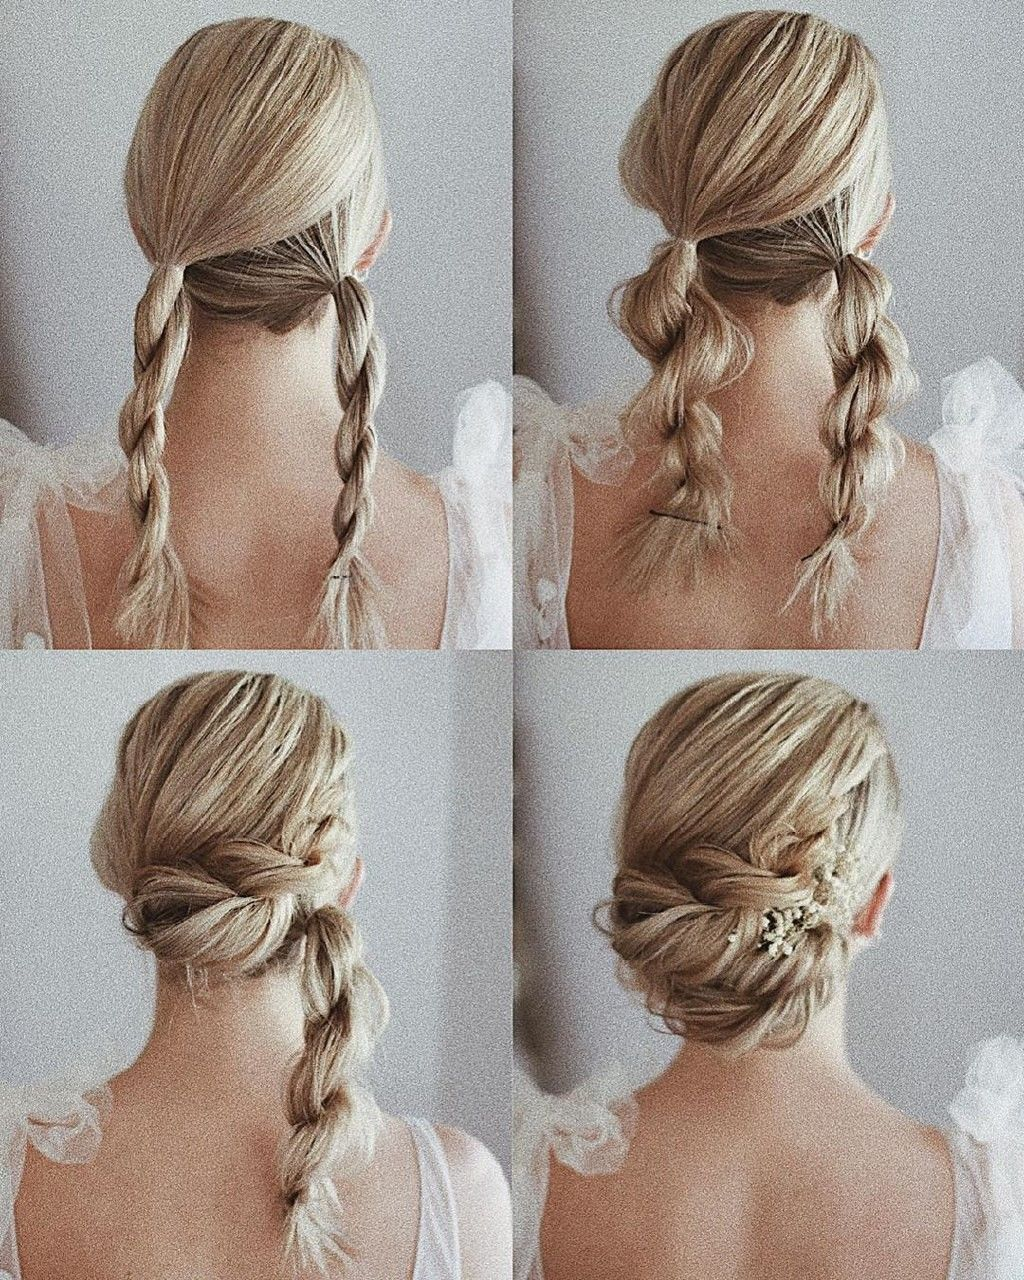 Pin By Kylie Loving On Hair And Makeup Braided Hairstyles